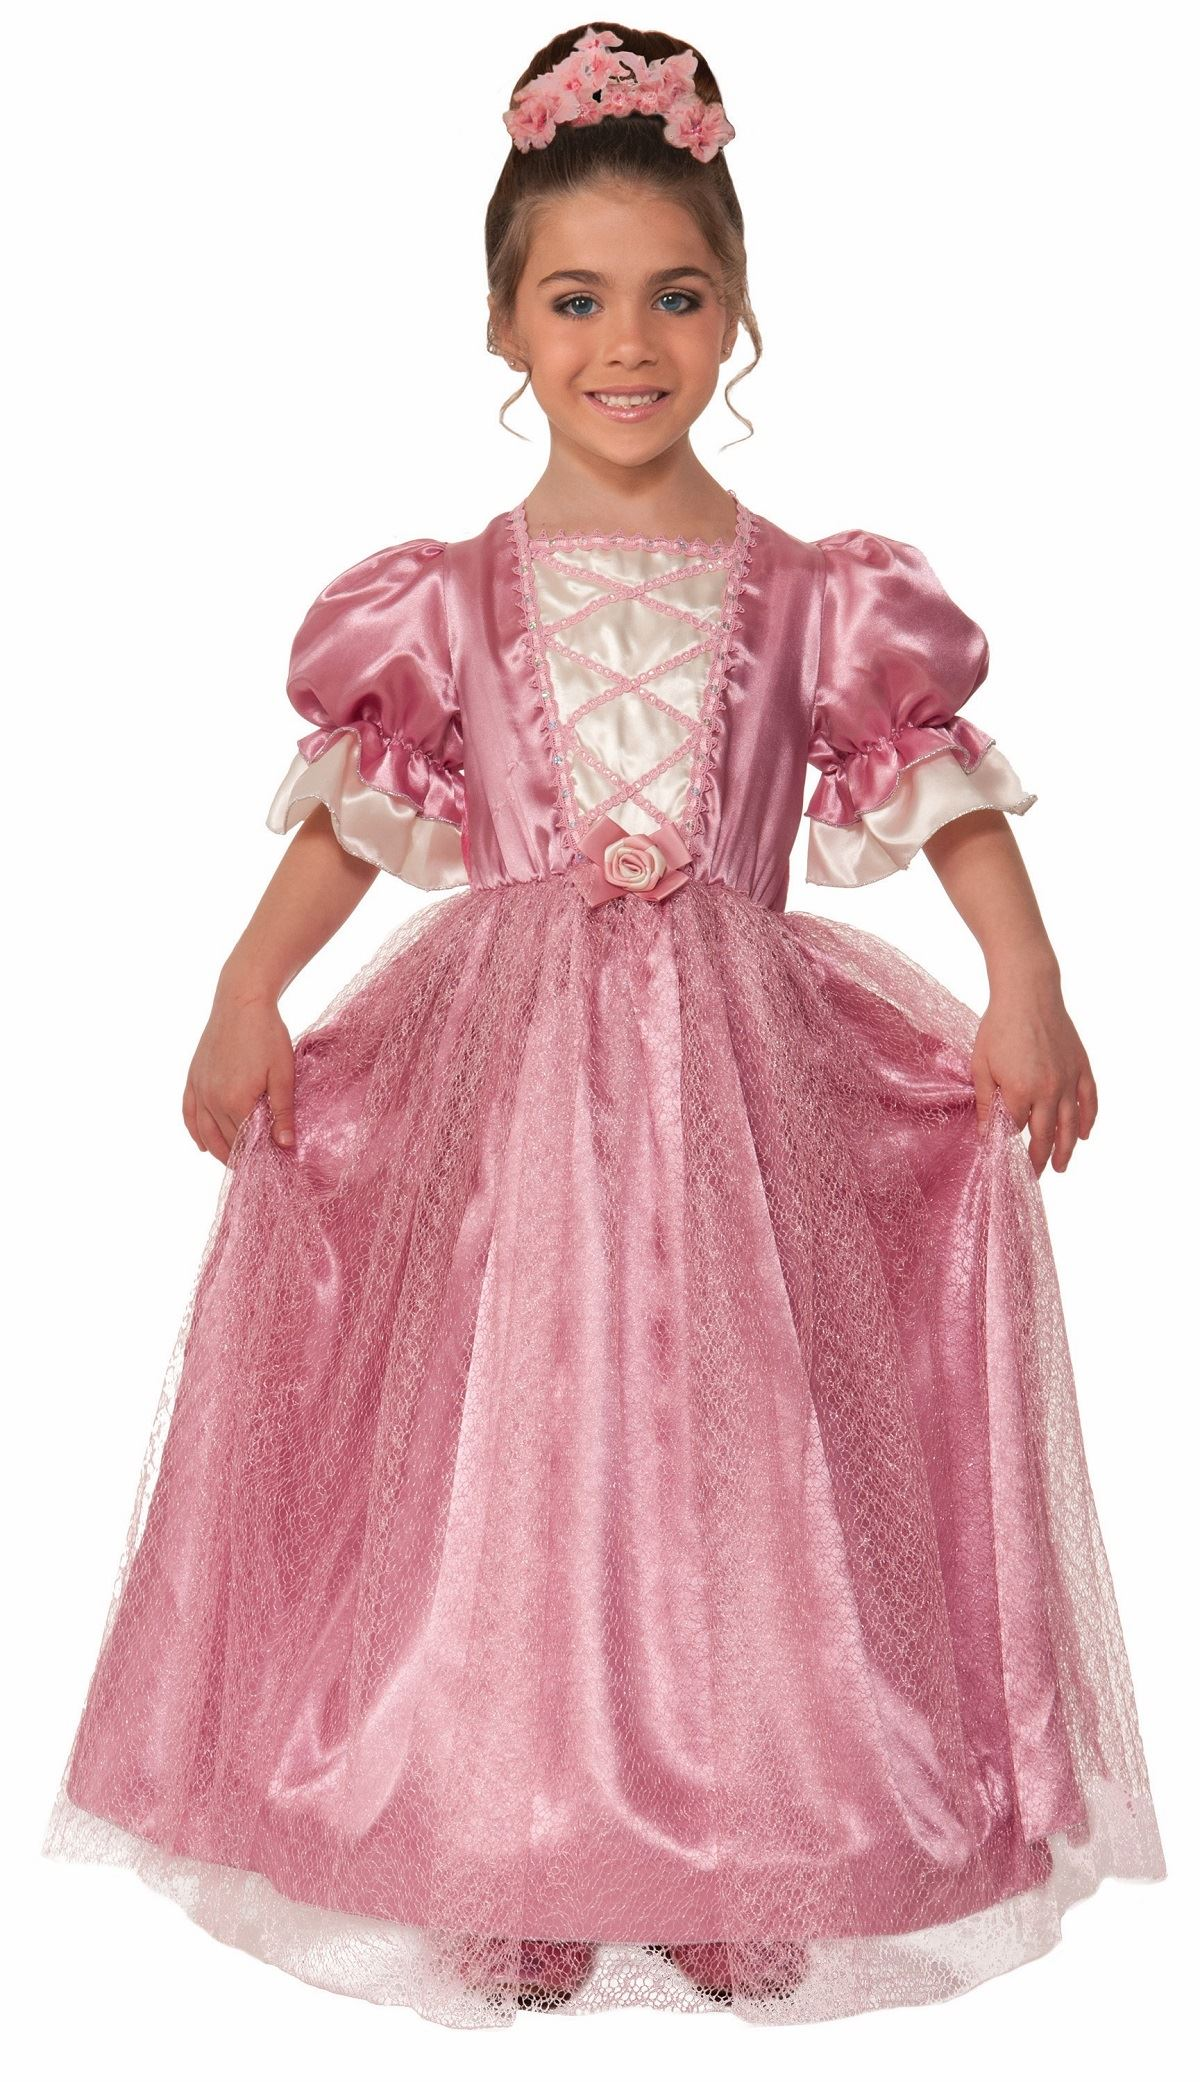 Kids Victorian Rose Girls Costume | $43.99 | The Costume Land